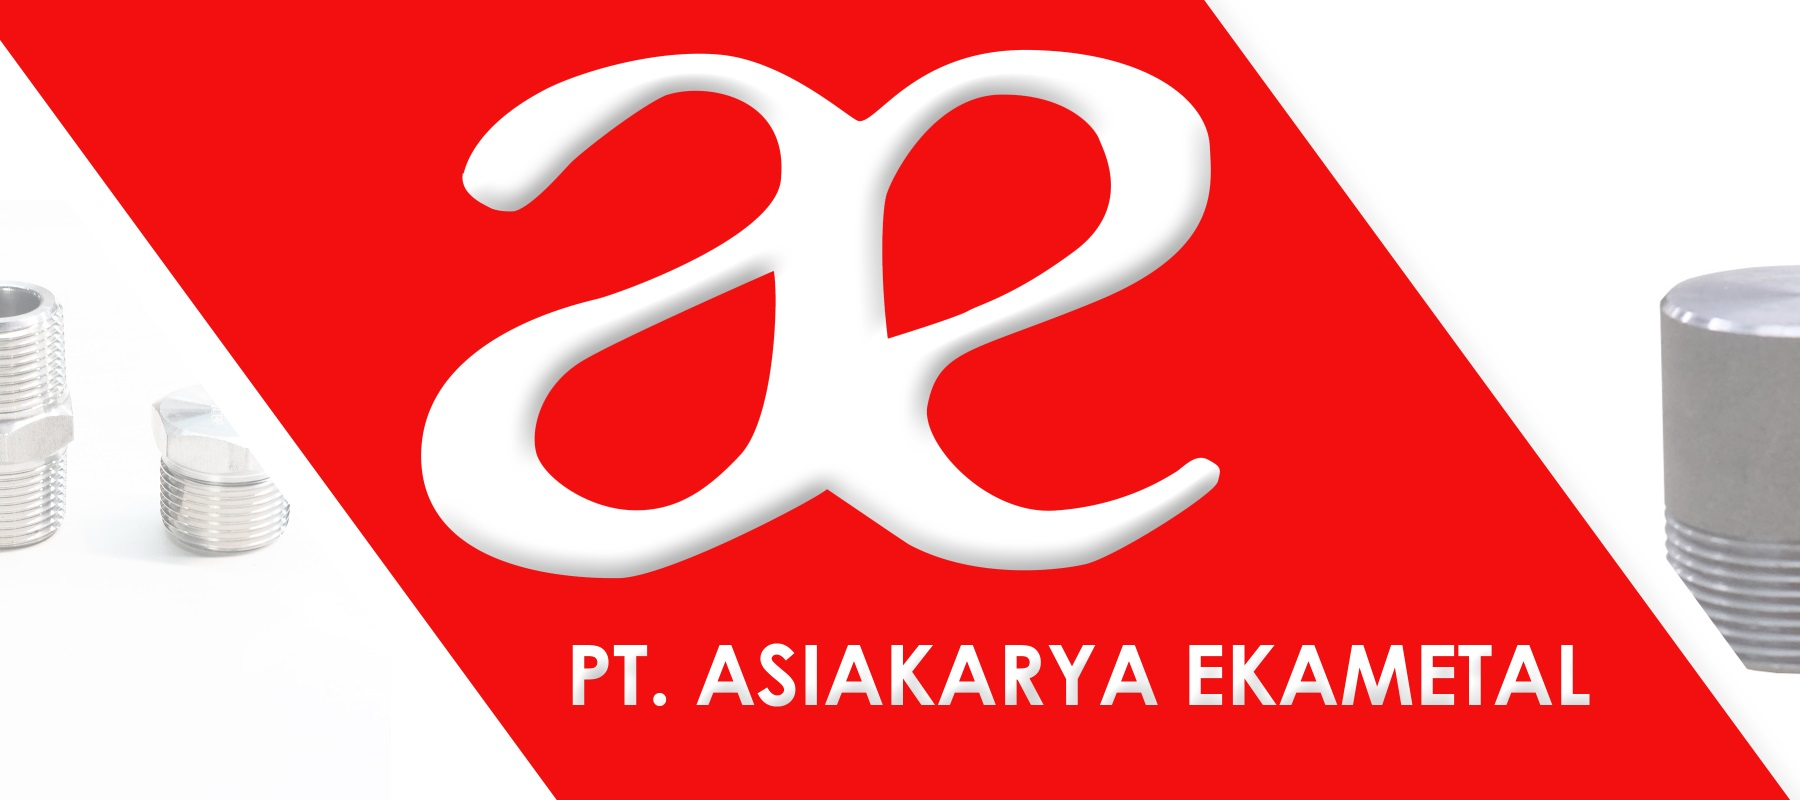 Asiakarya Ekametal_Logo and Text-White 124x26